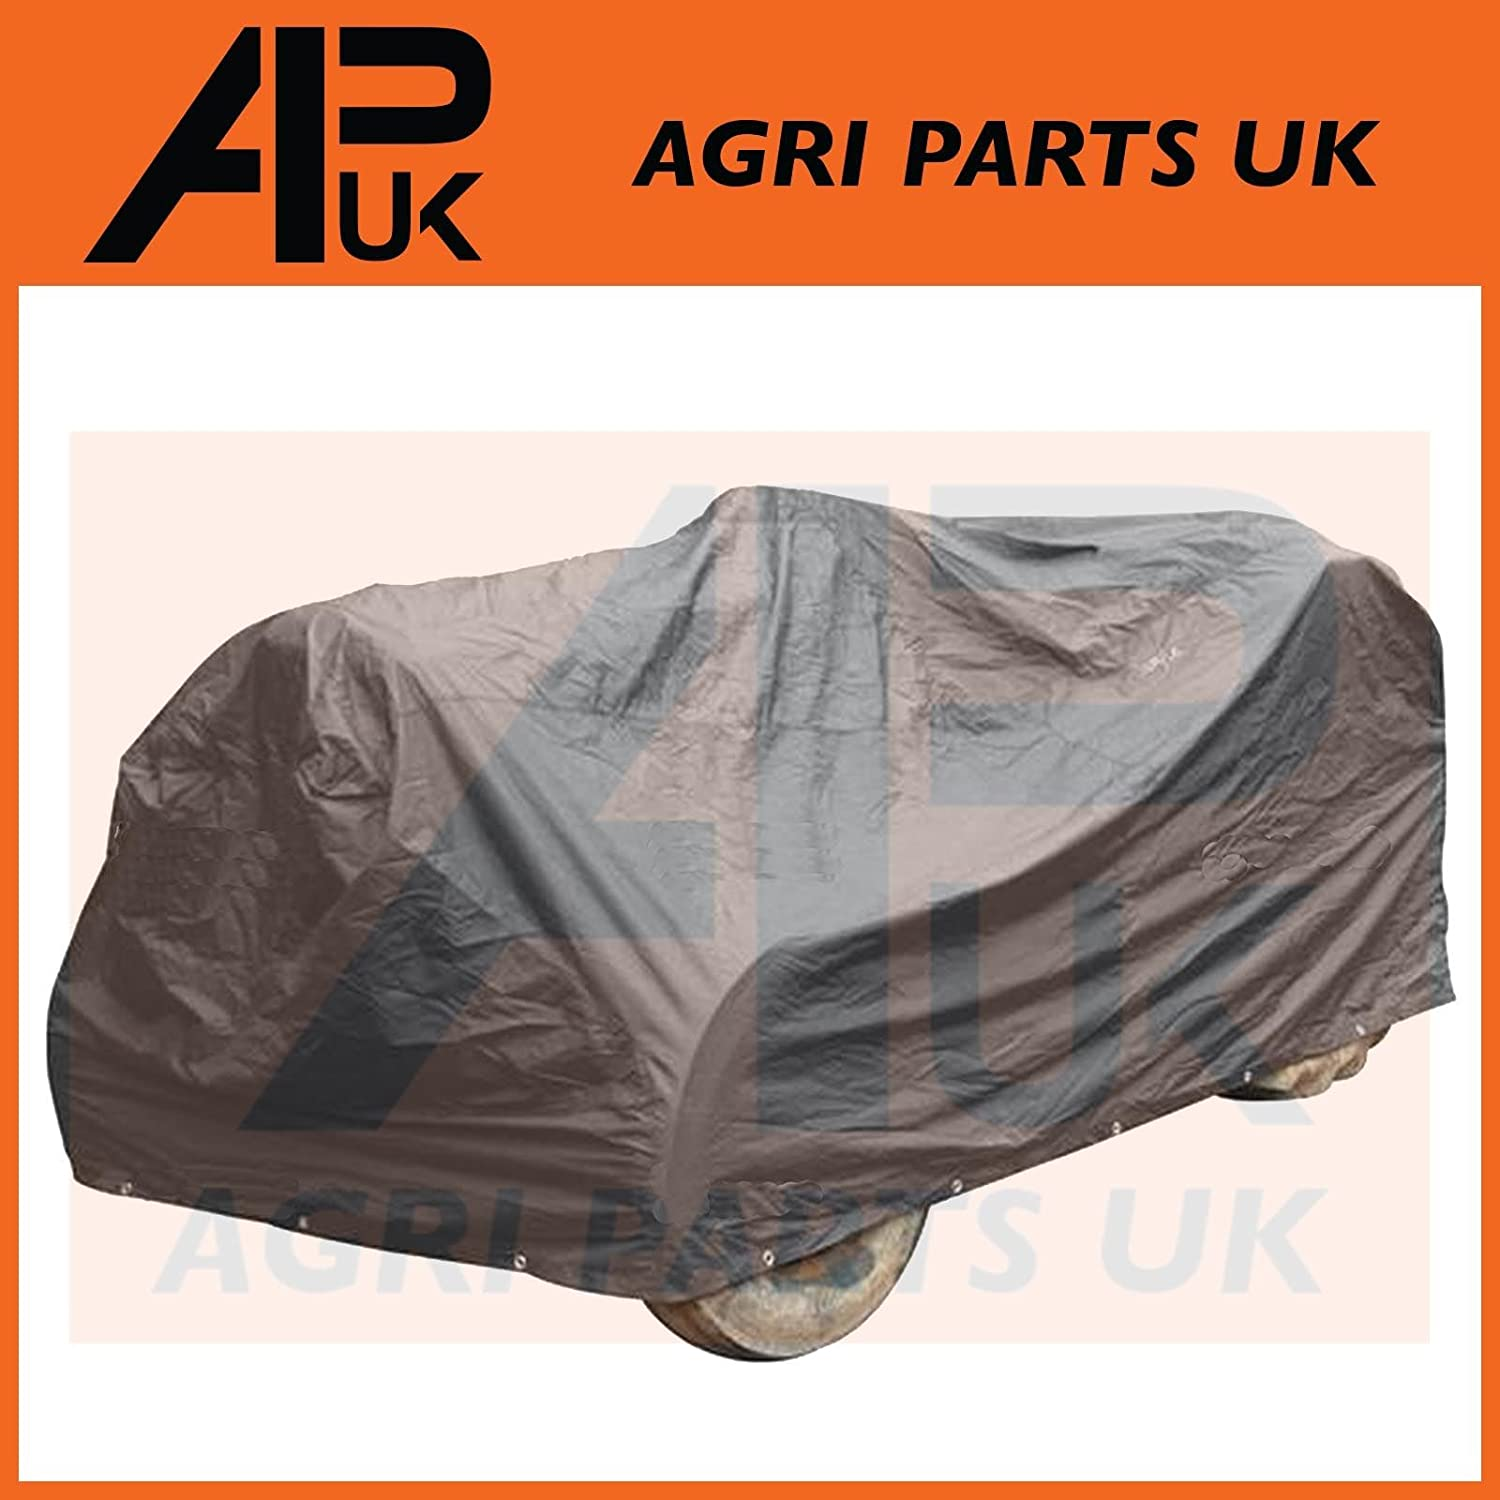 APUK Protective Storage Cover Sheet Tarp Compatible with Fordson Dexta Super Vintage Classic Tractor